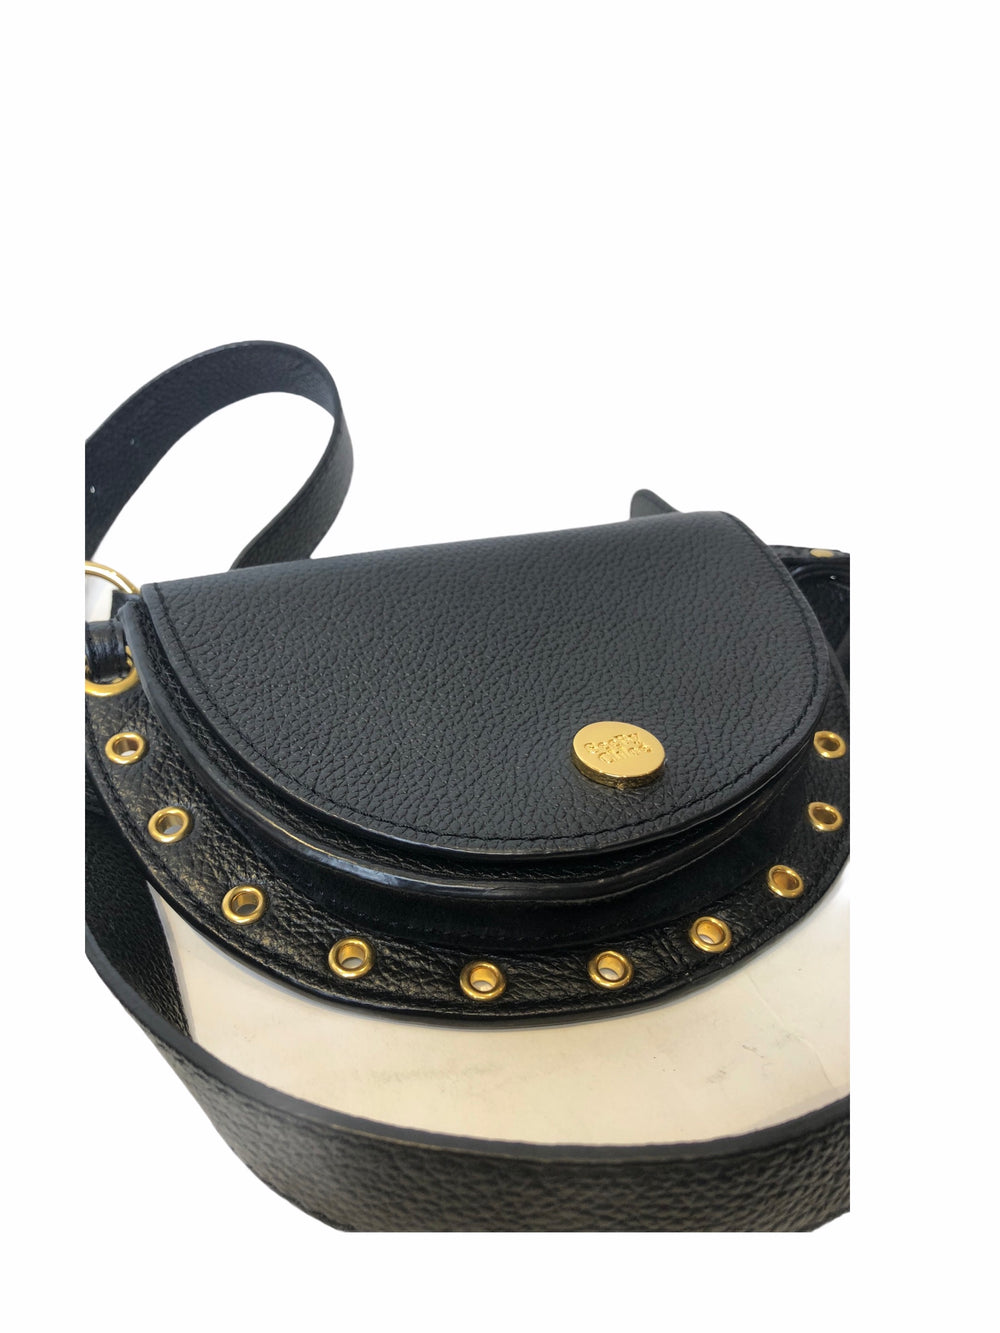 See by Chloe Black Leather Crossbody/Beltbag